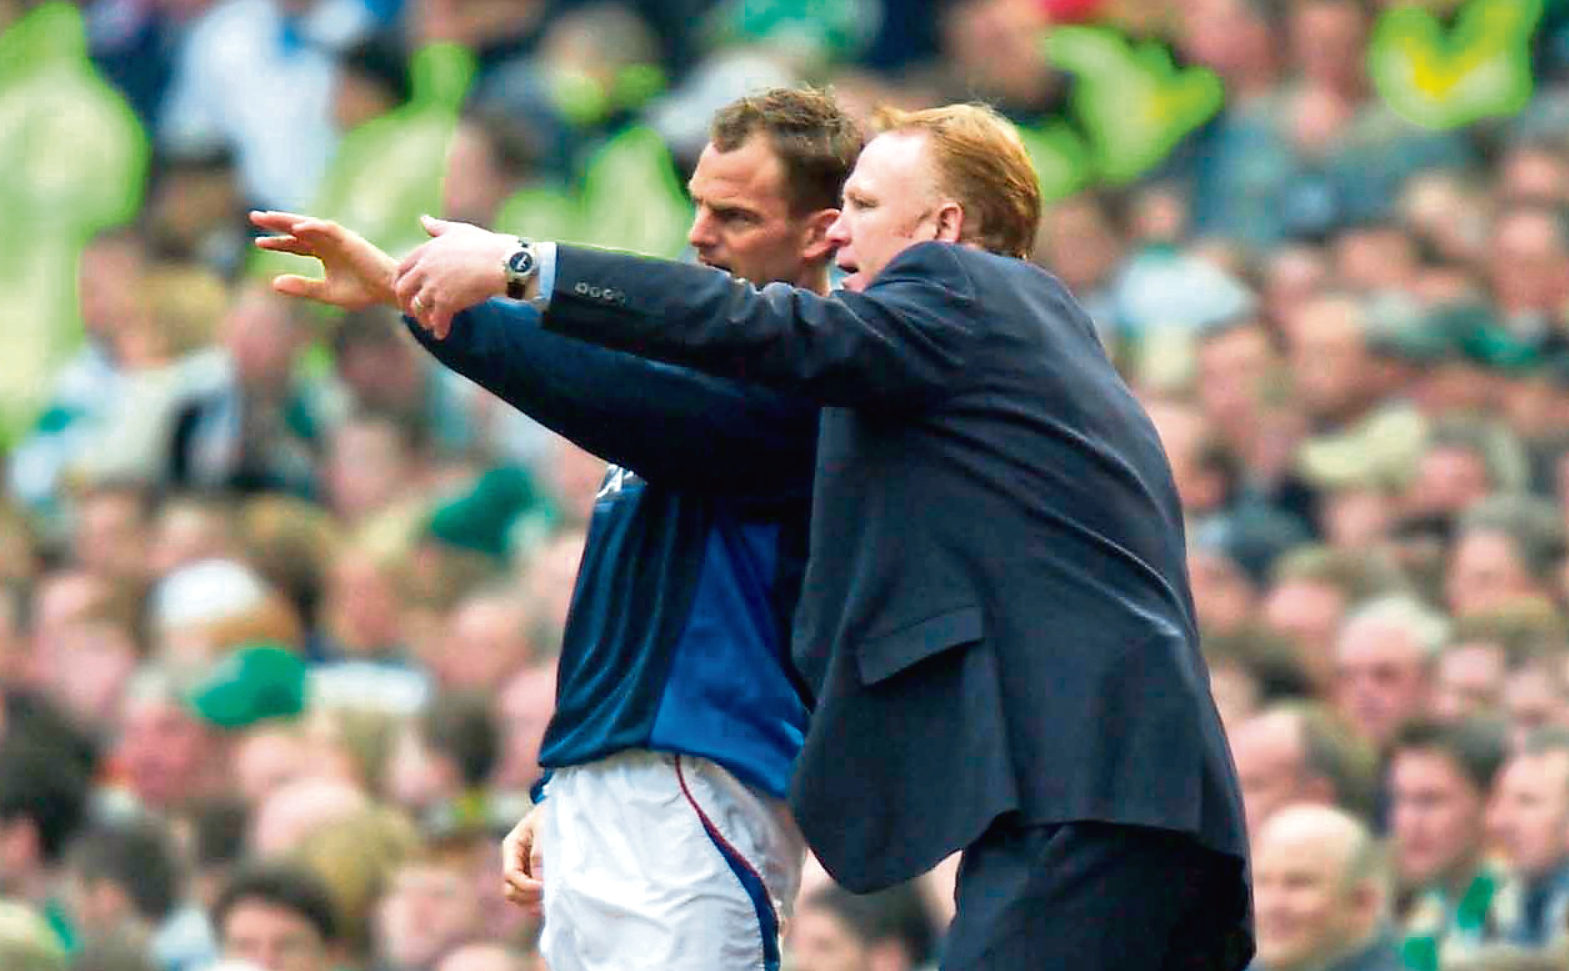 2004 - Rangers manager Alex Mcleish (right) gives instructions to Ronald de Boer (SNS Group)